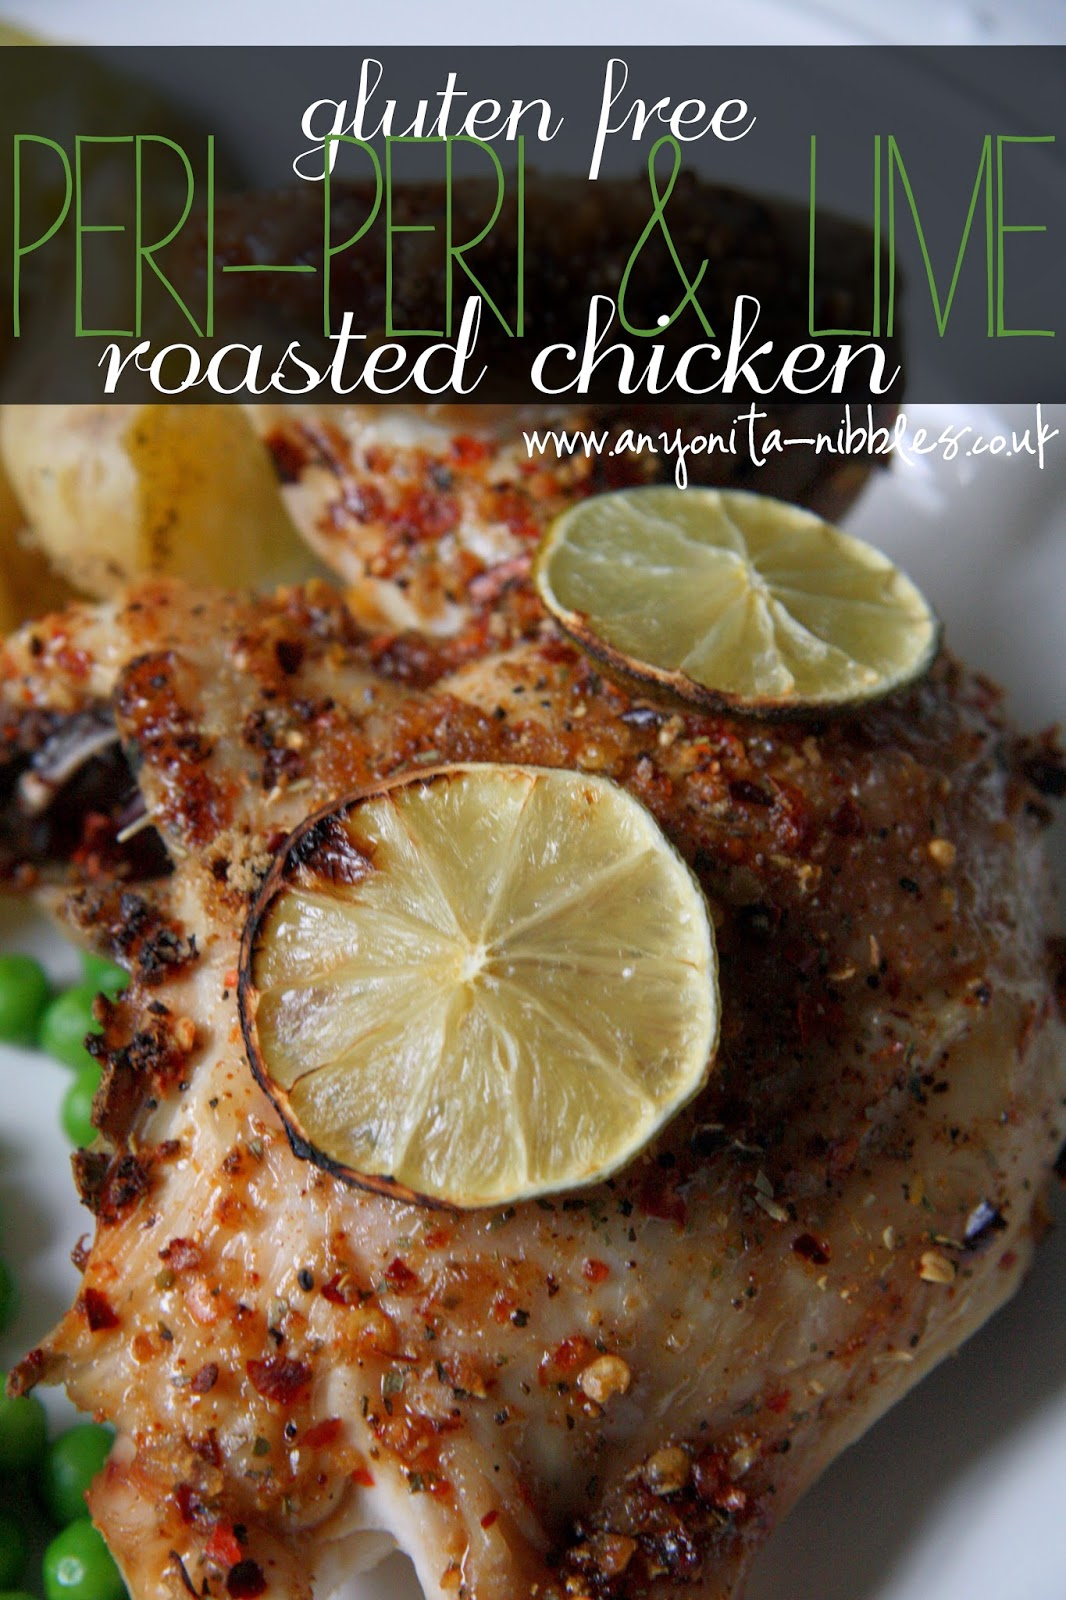 #glutenfree #periperi & lime roasted #chicken from www.anyonita-nibbles.co.uk